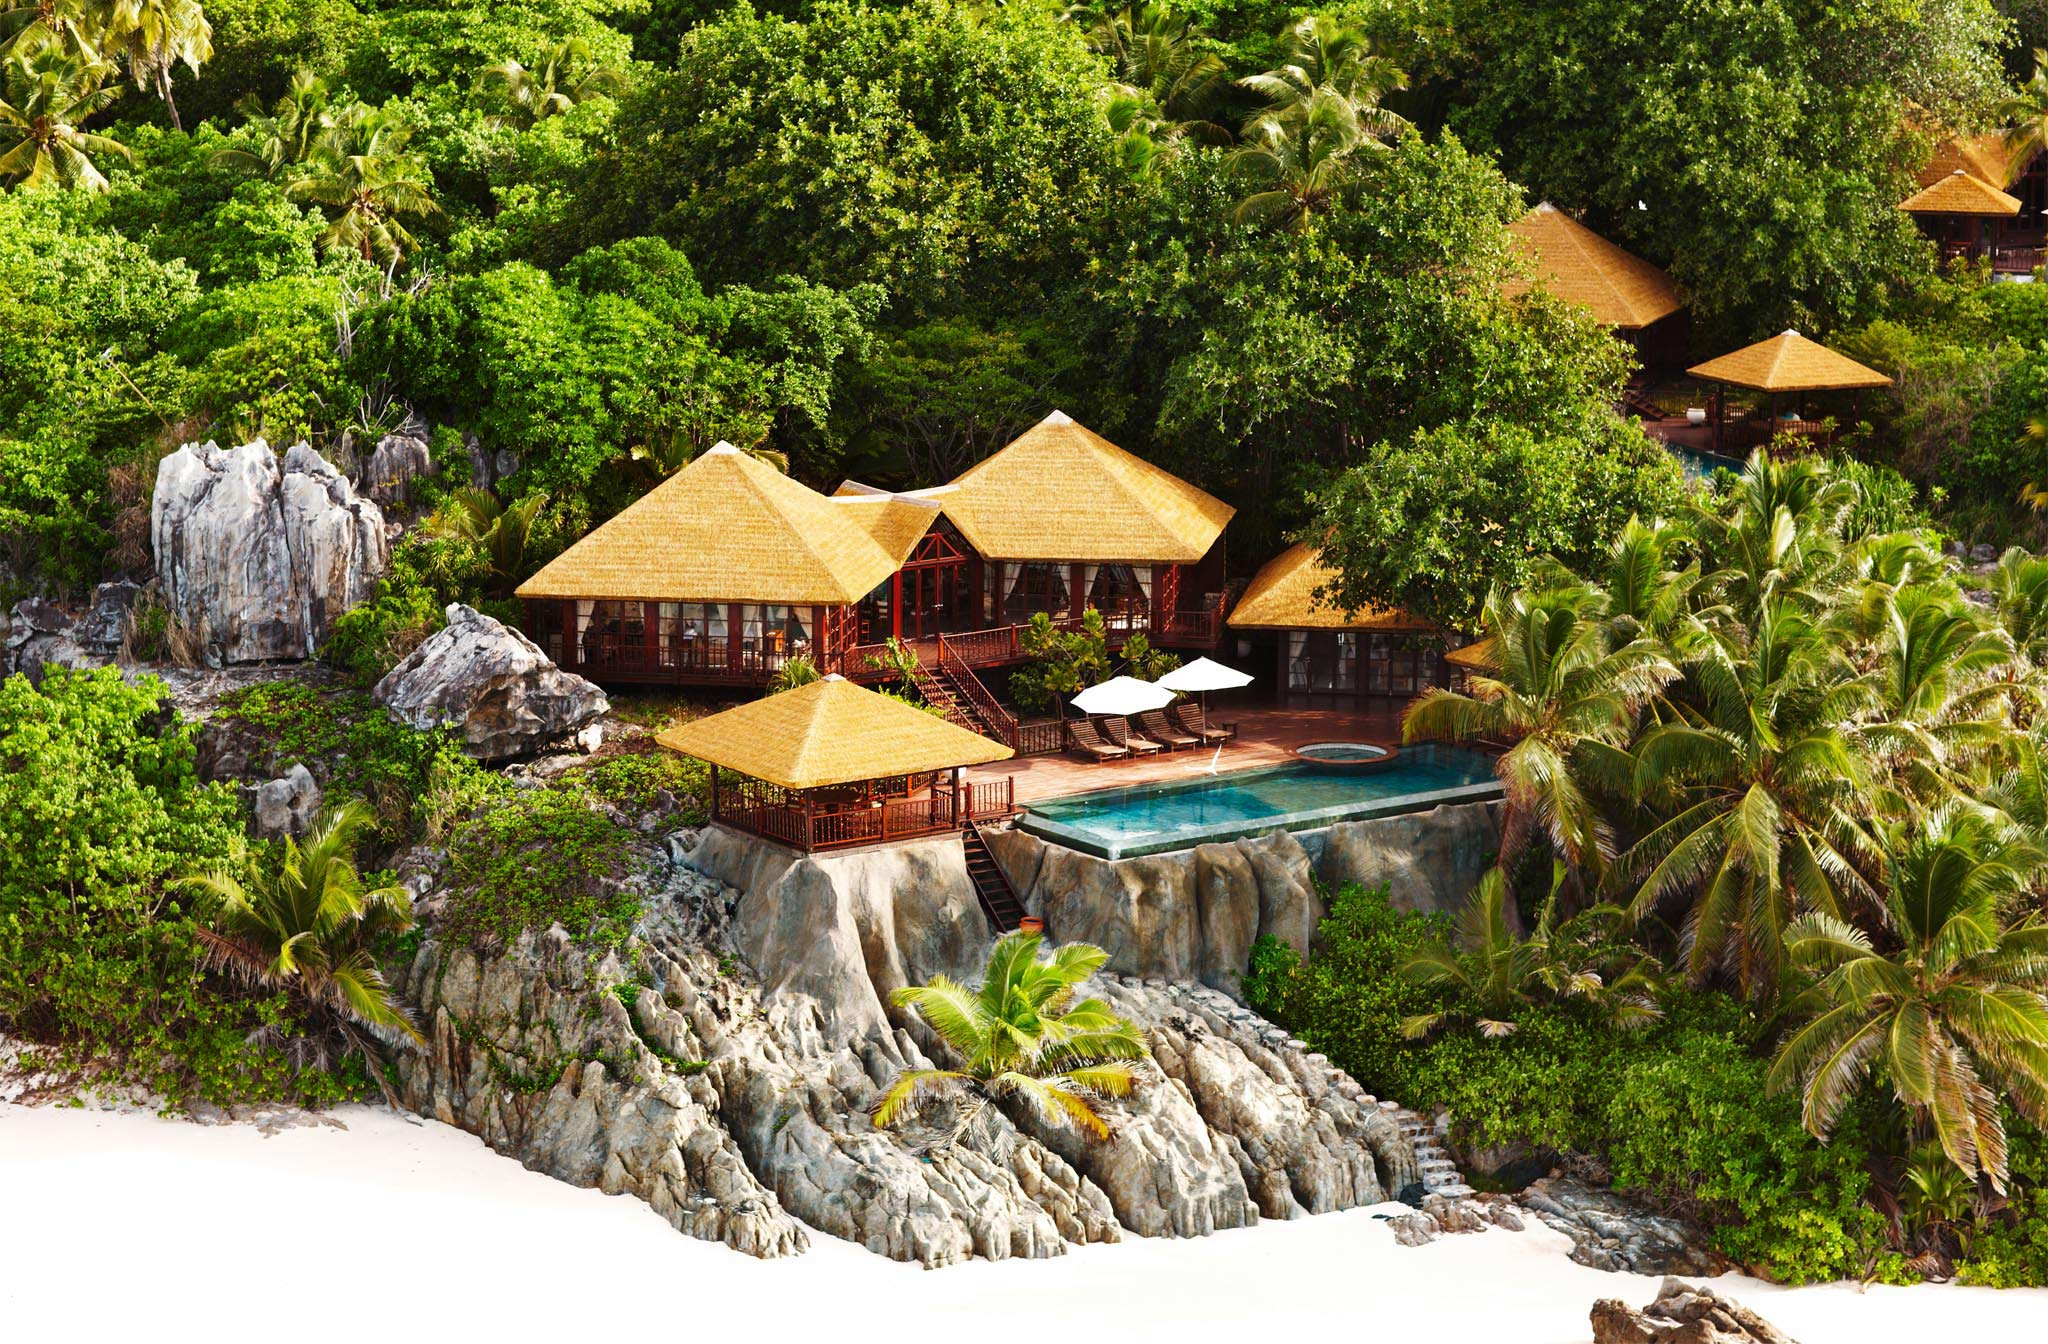 villa on the beach at Fregate with an infinity pool built into the granite boulders